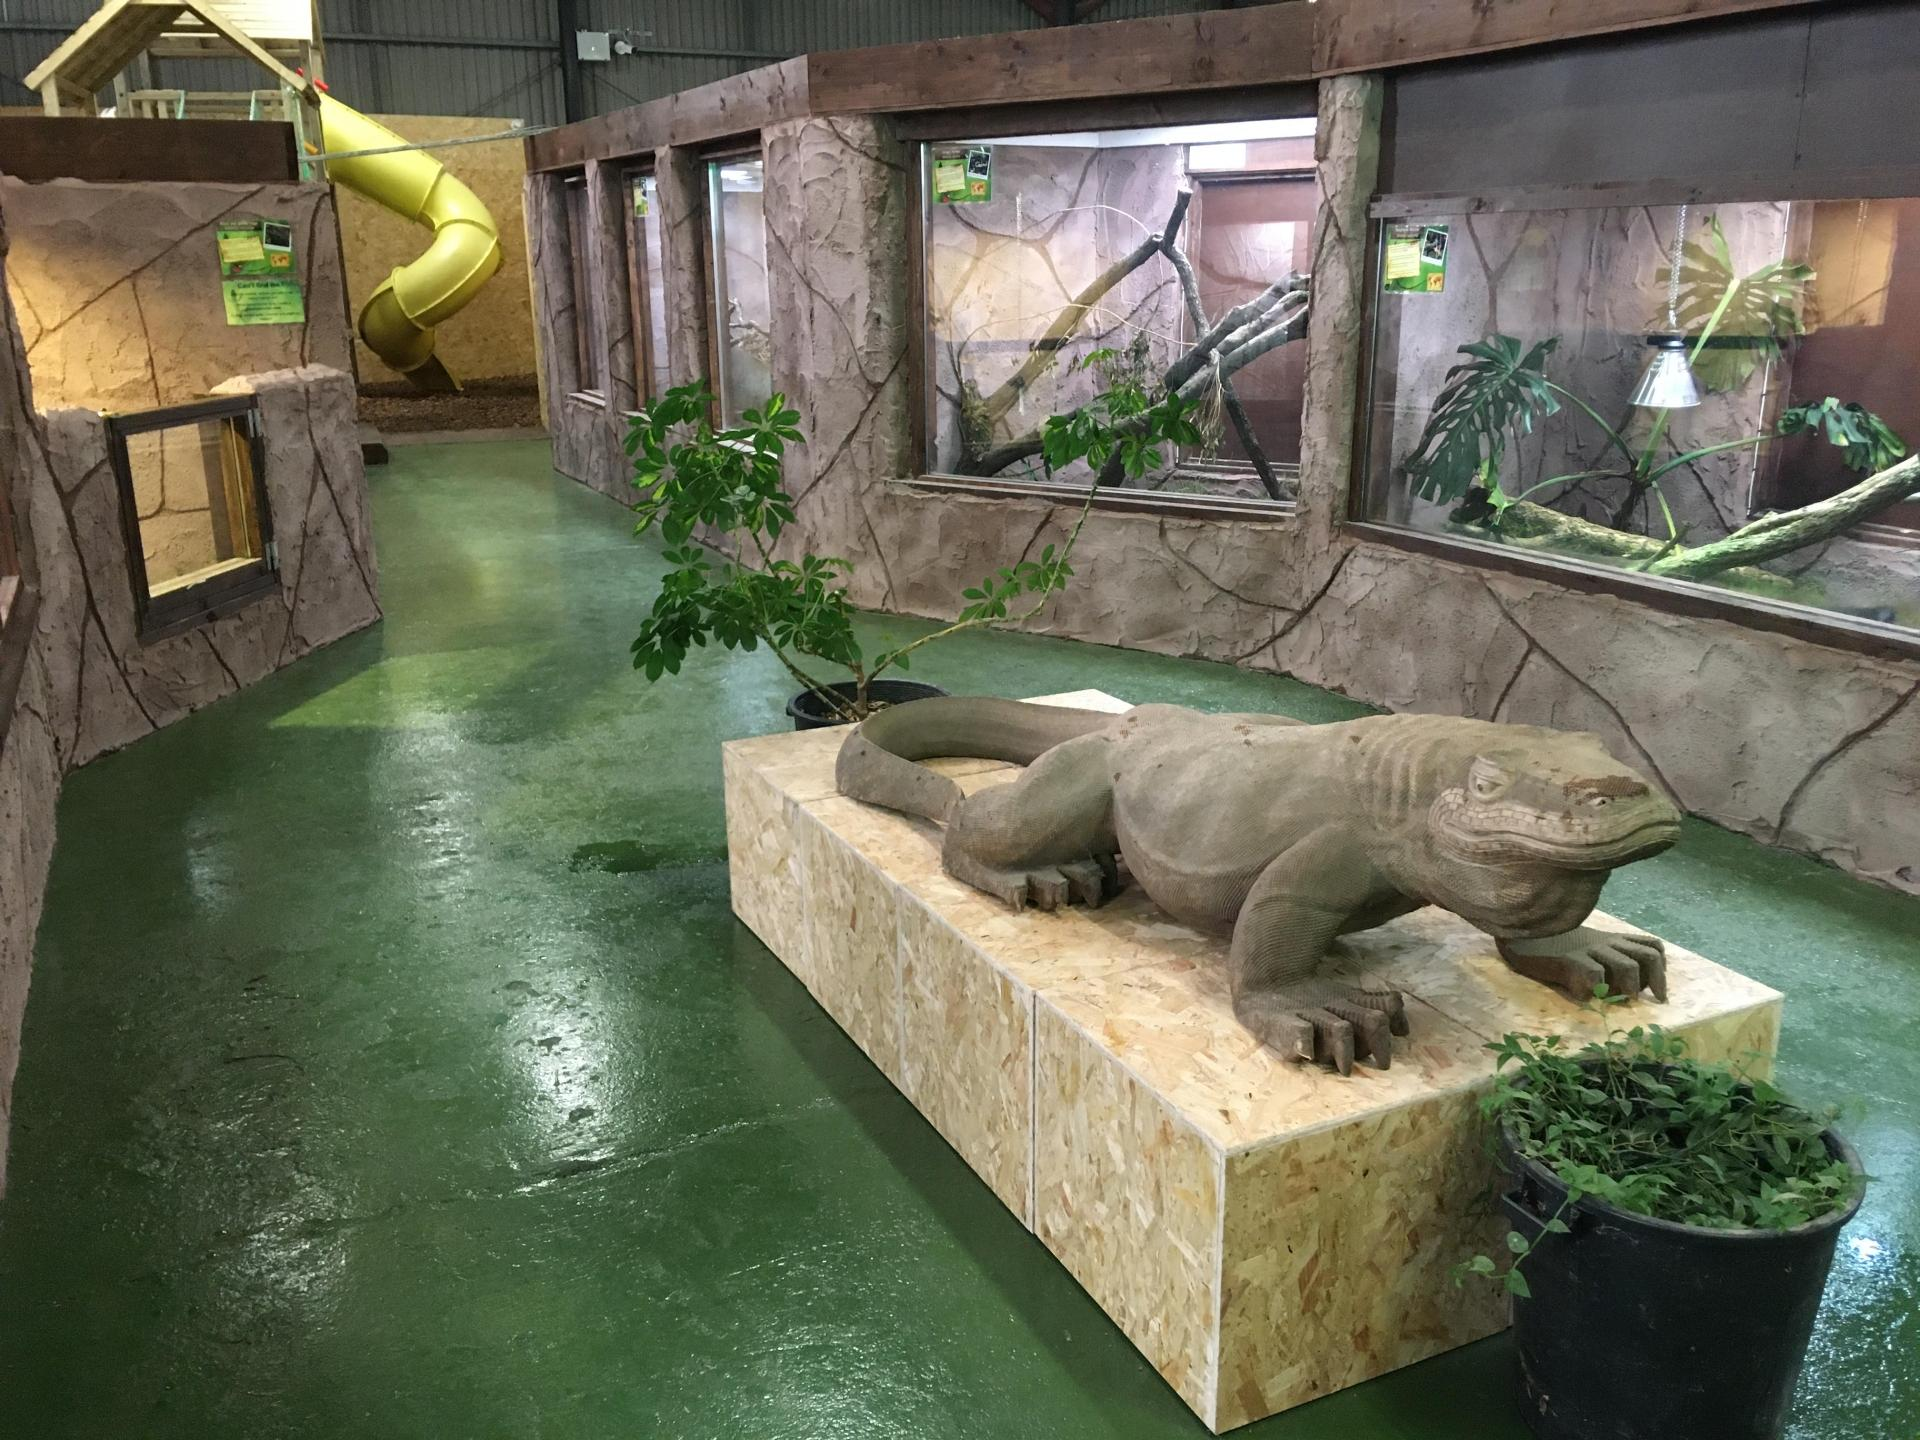 The National Reptile Zoo in Kilkenny is asking for support to help feed the animals - Kilkenny People